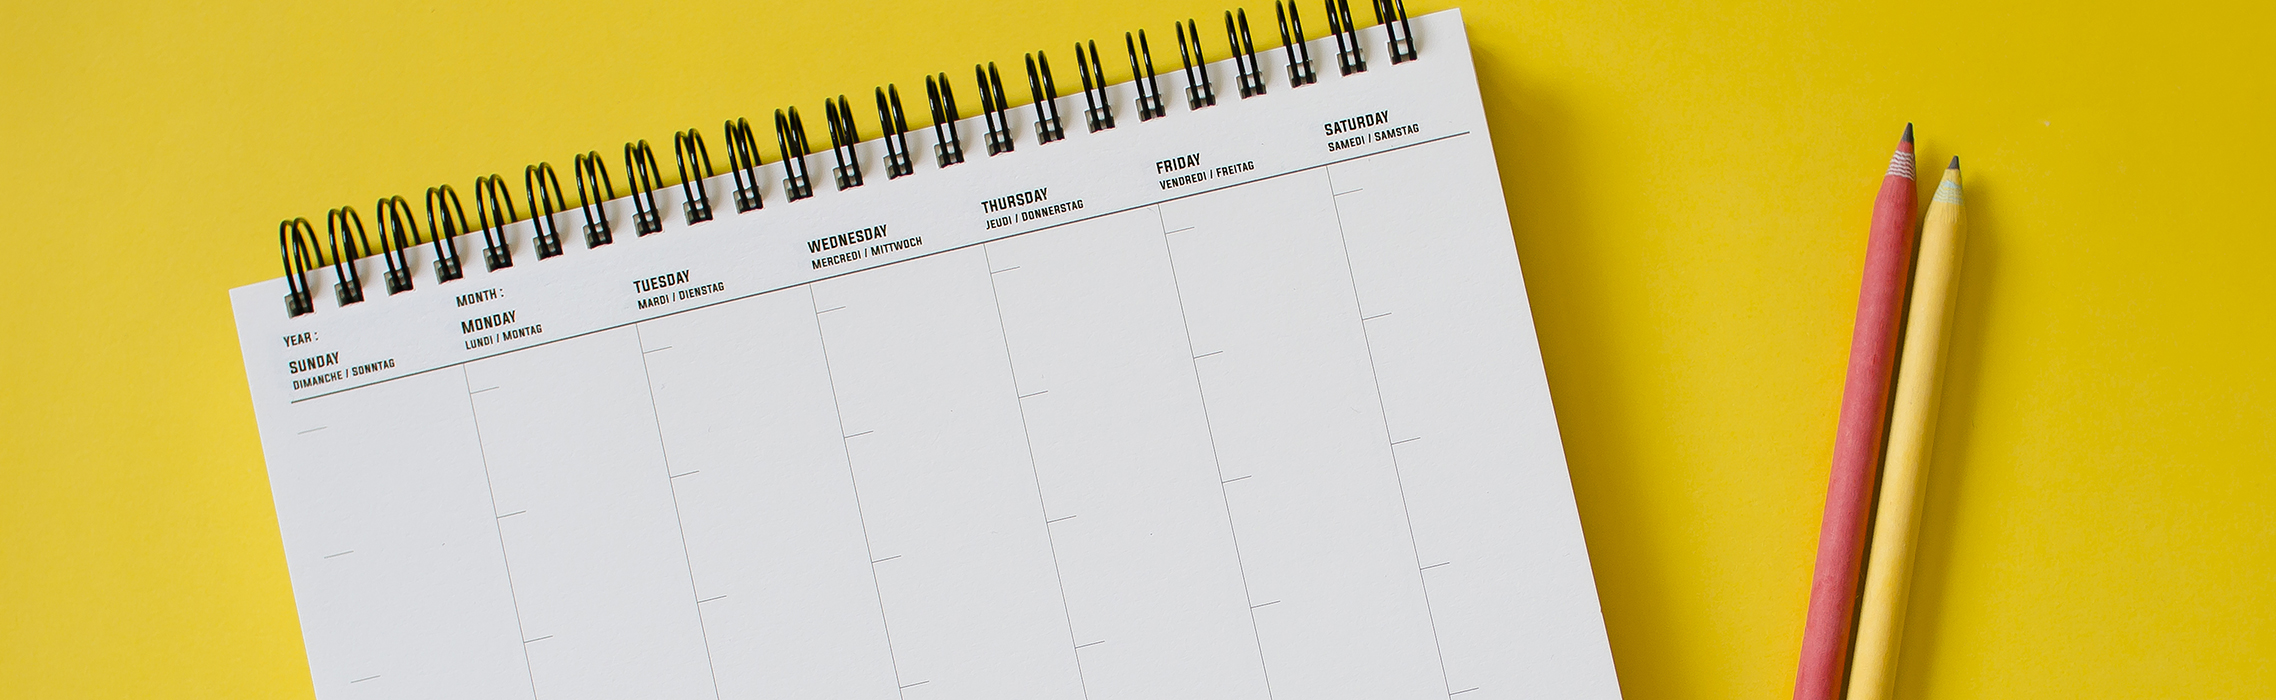 How to Make a Branded Planner Booklet for Your Business